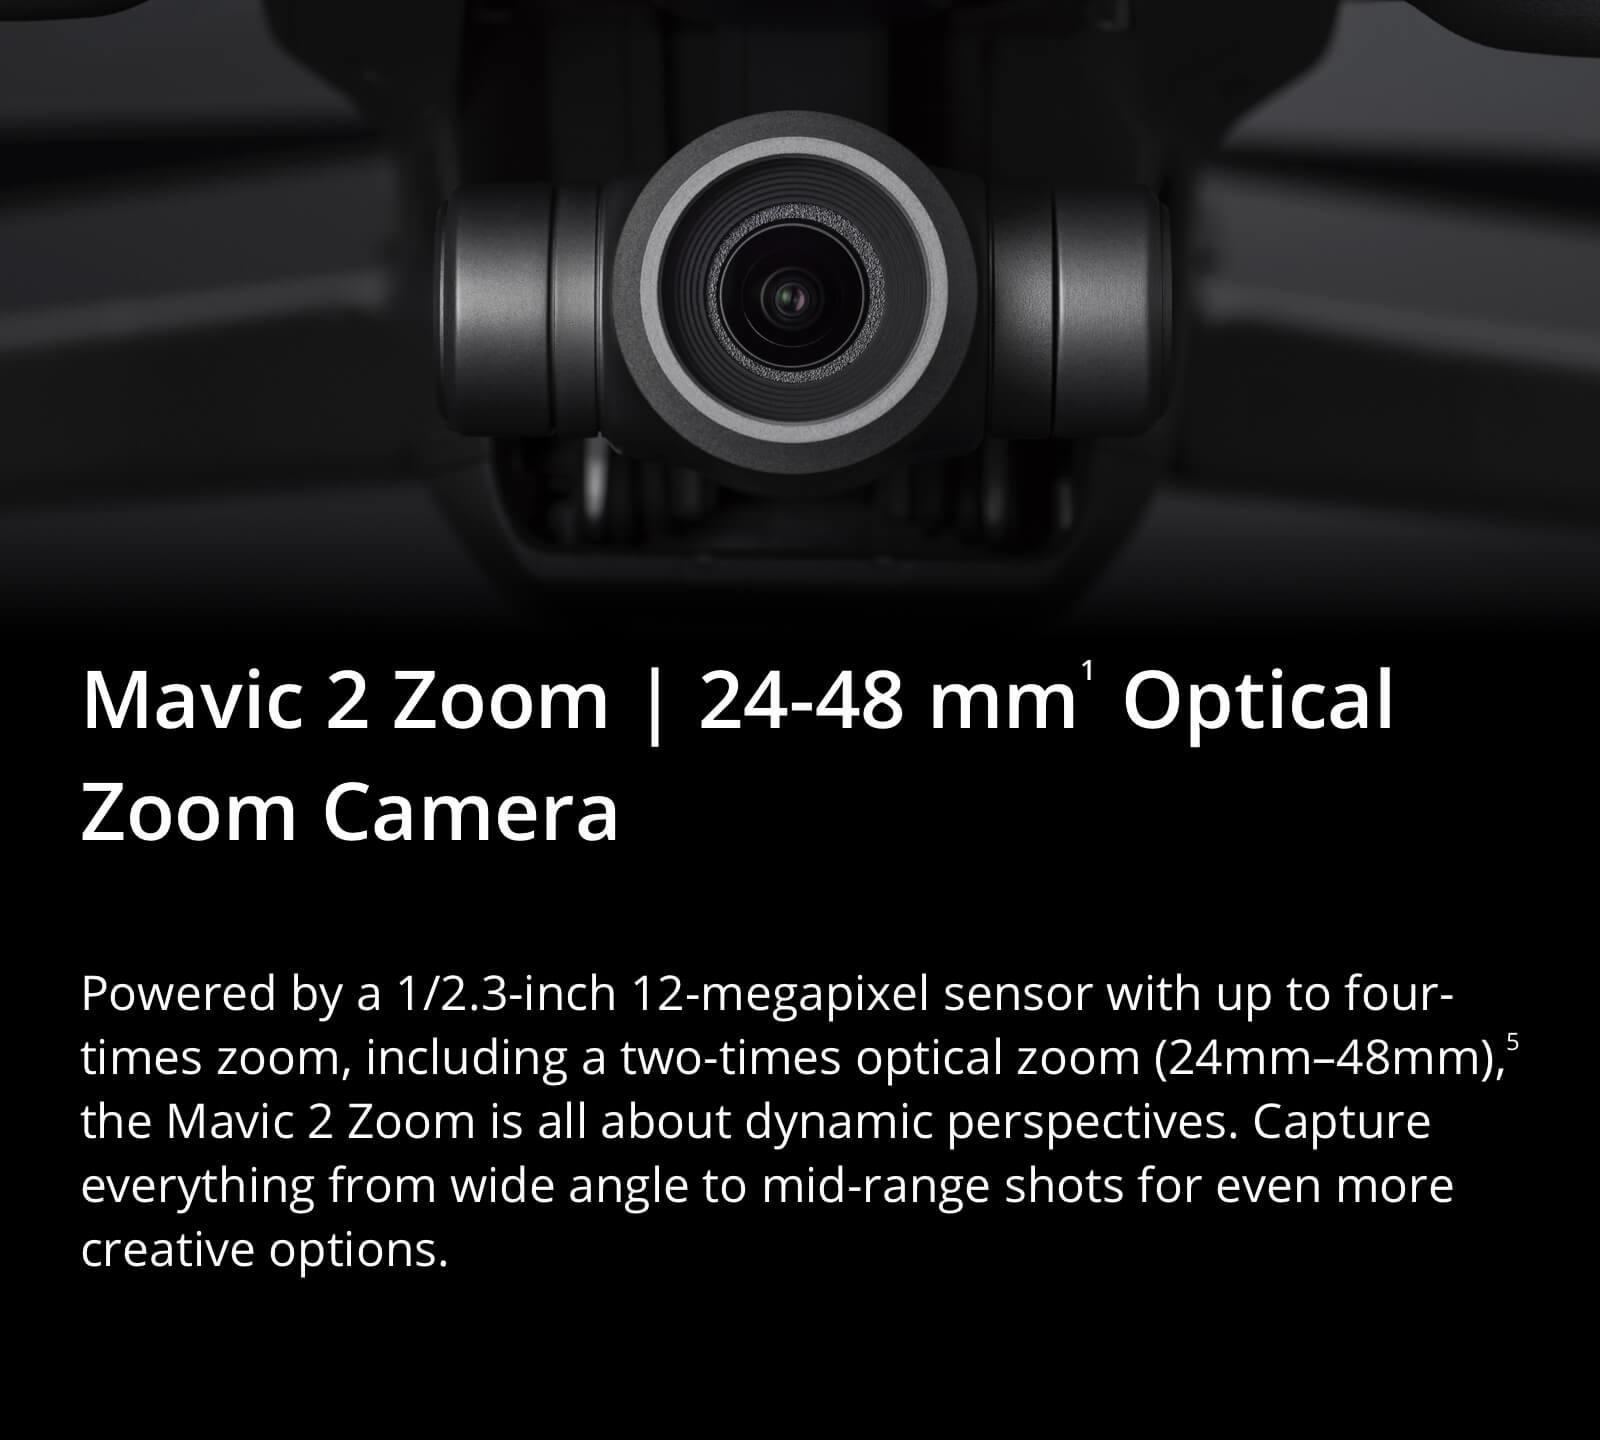 Mavic Zoom Camera specs